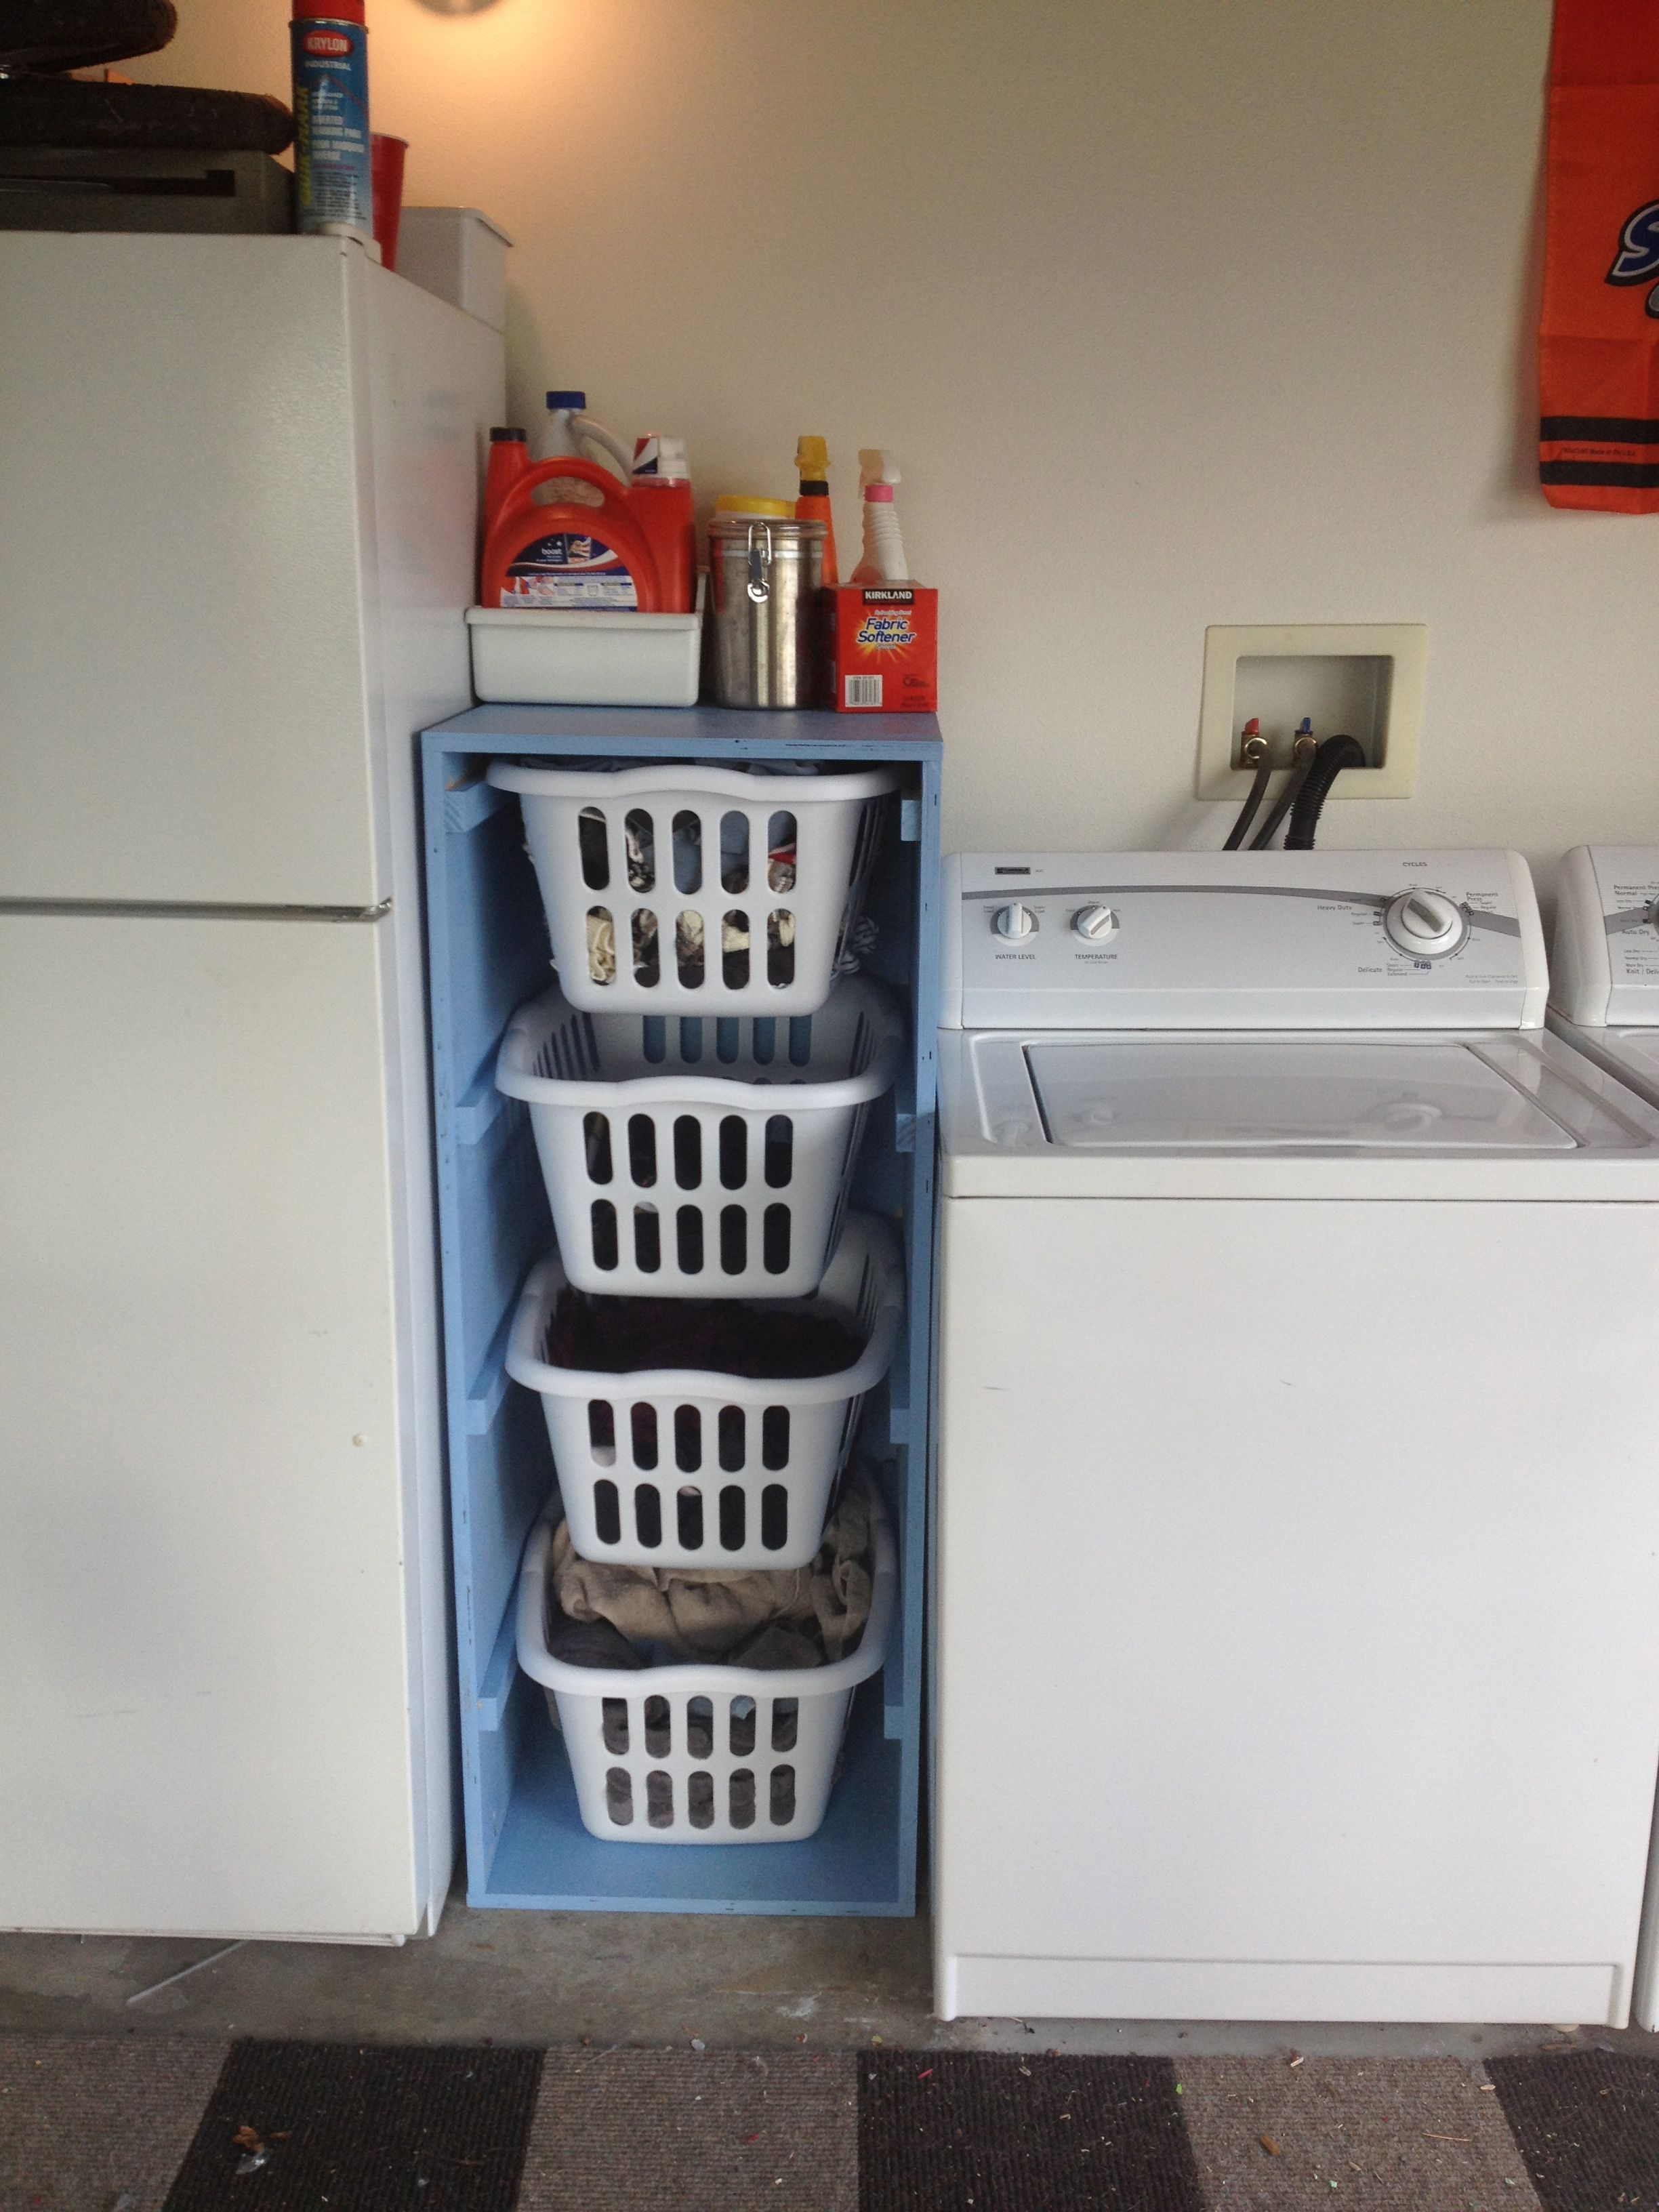 Laundry sorter do it yourself home projects from ana white cosas laundry sorter do it yourself home projects from ana white solutioingenieria